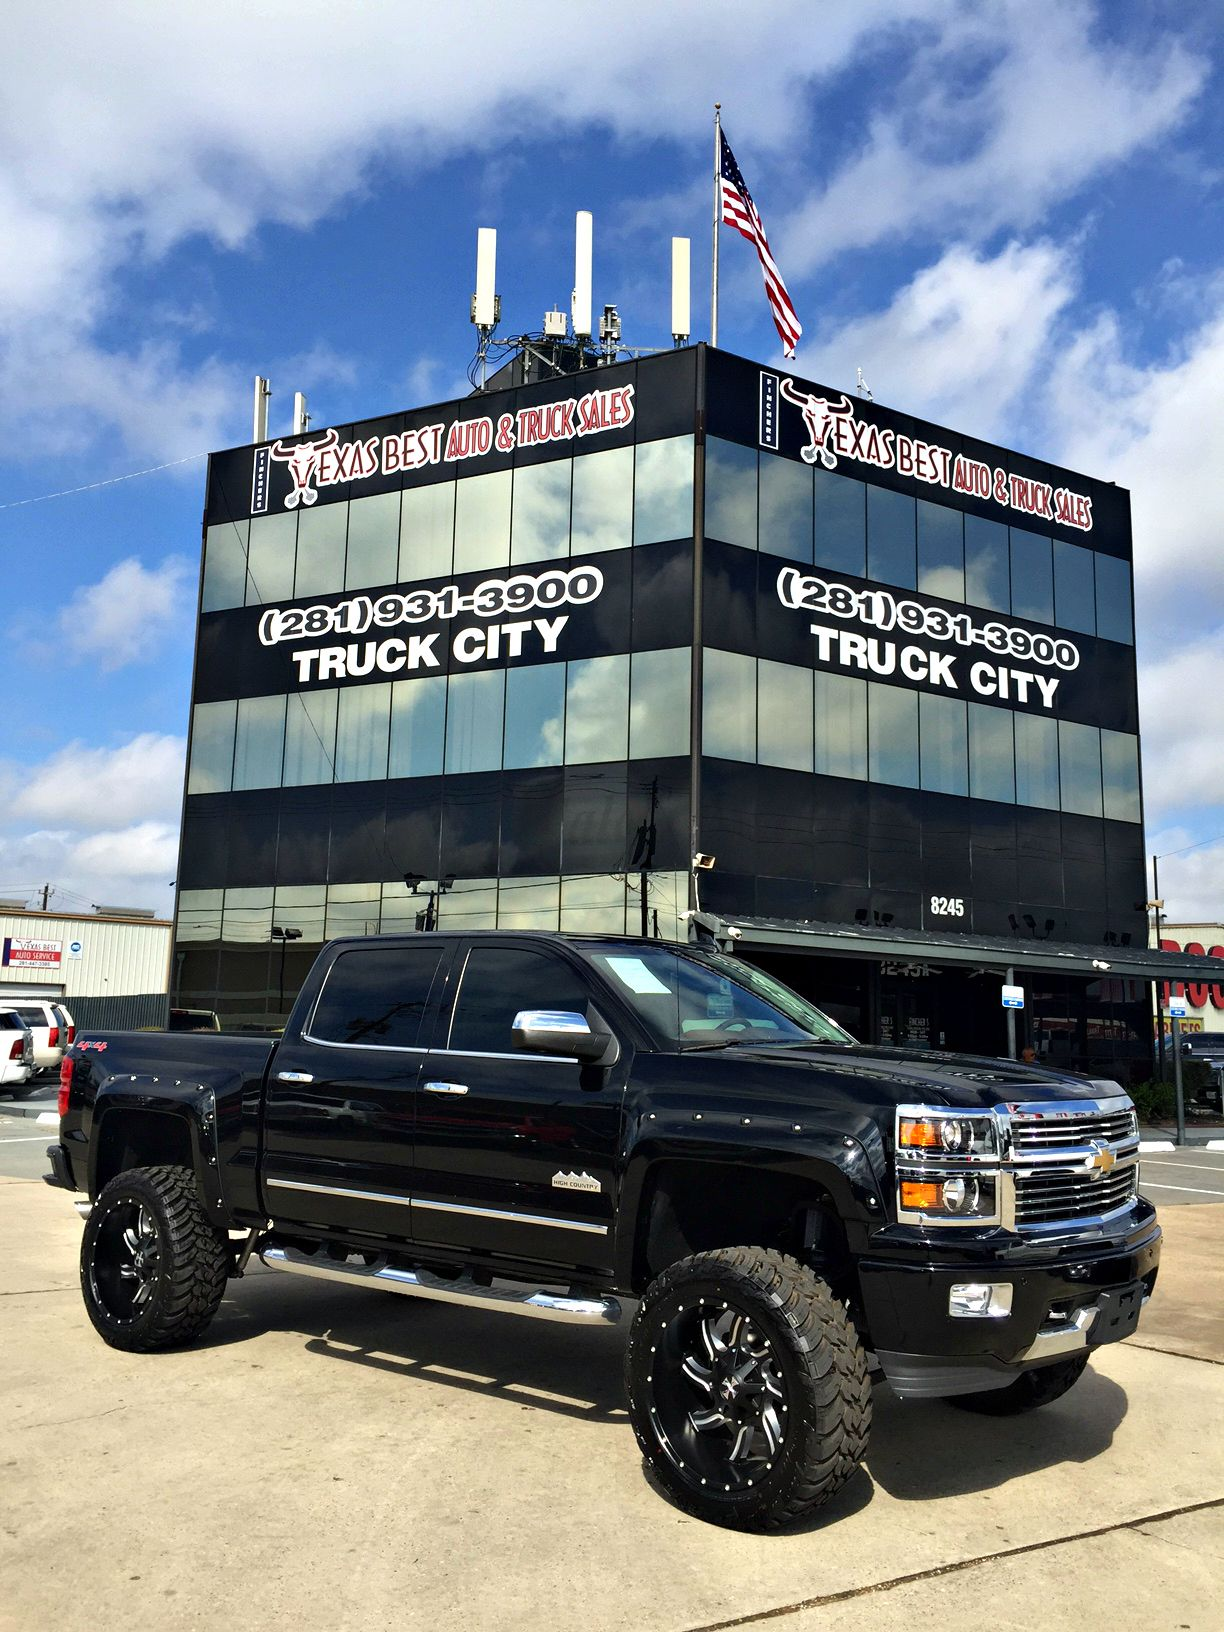 New Lift New Inventory Custom Lifted 2015 Chevrolet Silverado Highcountry With 22 Wheels Chevy Trucks Silverado Chevy High Country Lifted Chevy Trucks